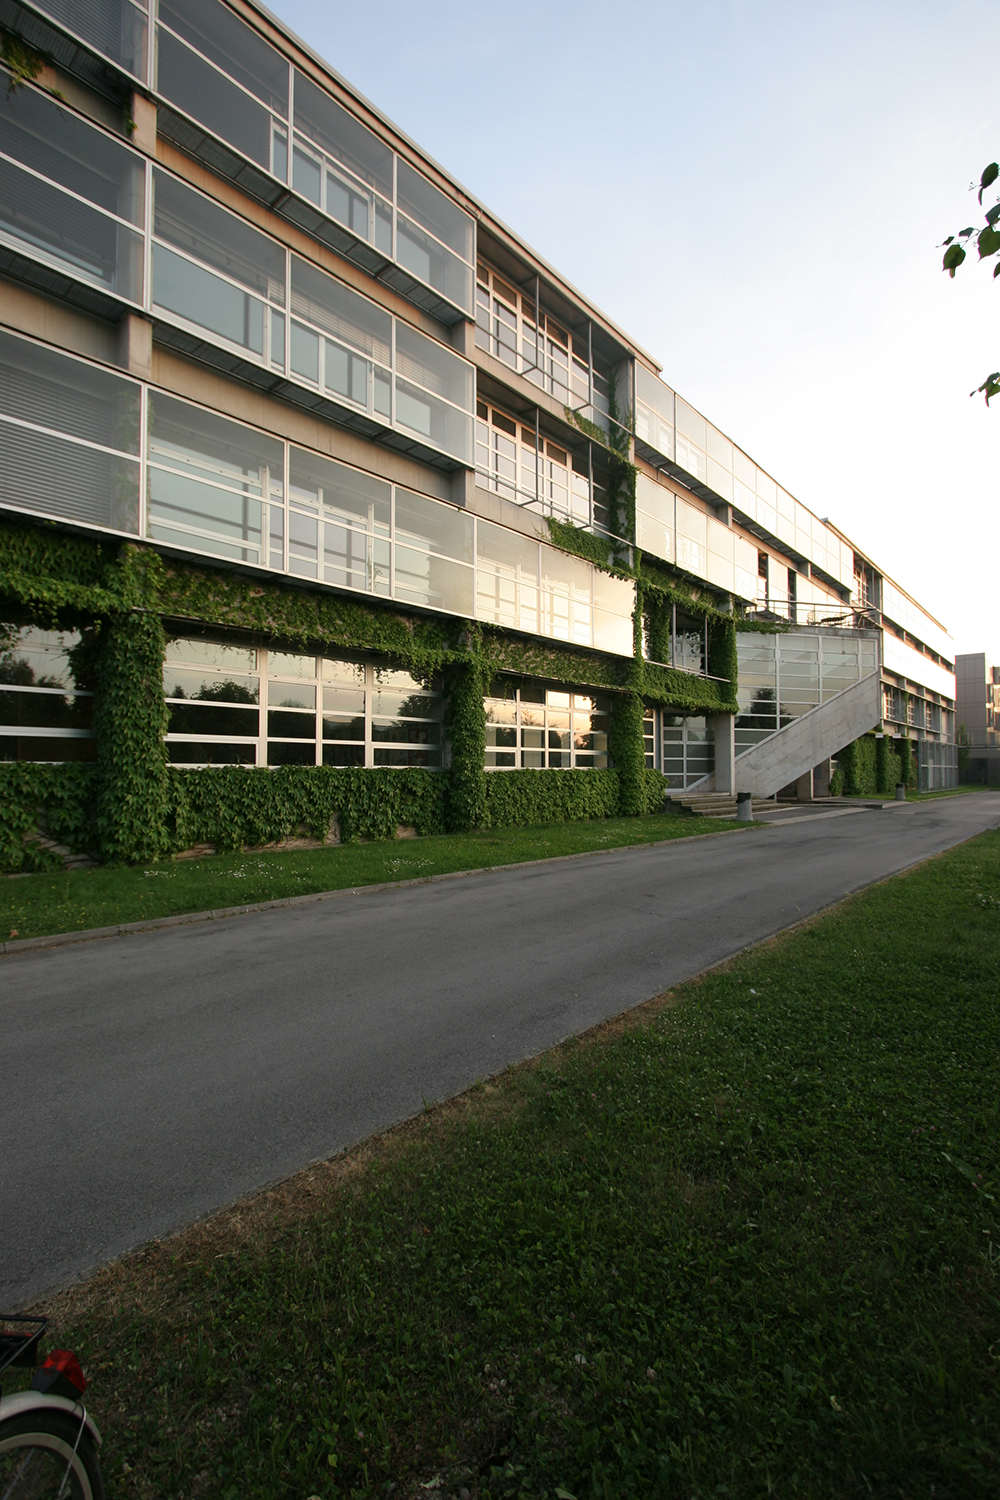 Secondary School of Nursing Ljubljana, (with Milena Todorić), competition 1995, constructed 1998; Photo JK Night photos: Janez Pukšič Architecture: Jurij Kobe, Milena Todorič Collaborators: Dominika Batista, Maja Ivanič, Lenka Kavčič, Sandra Fatur